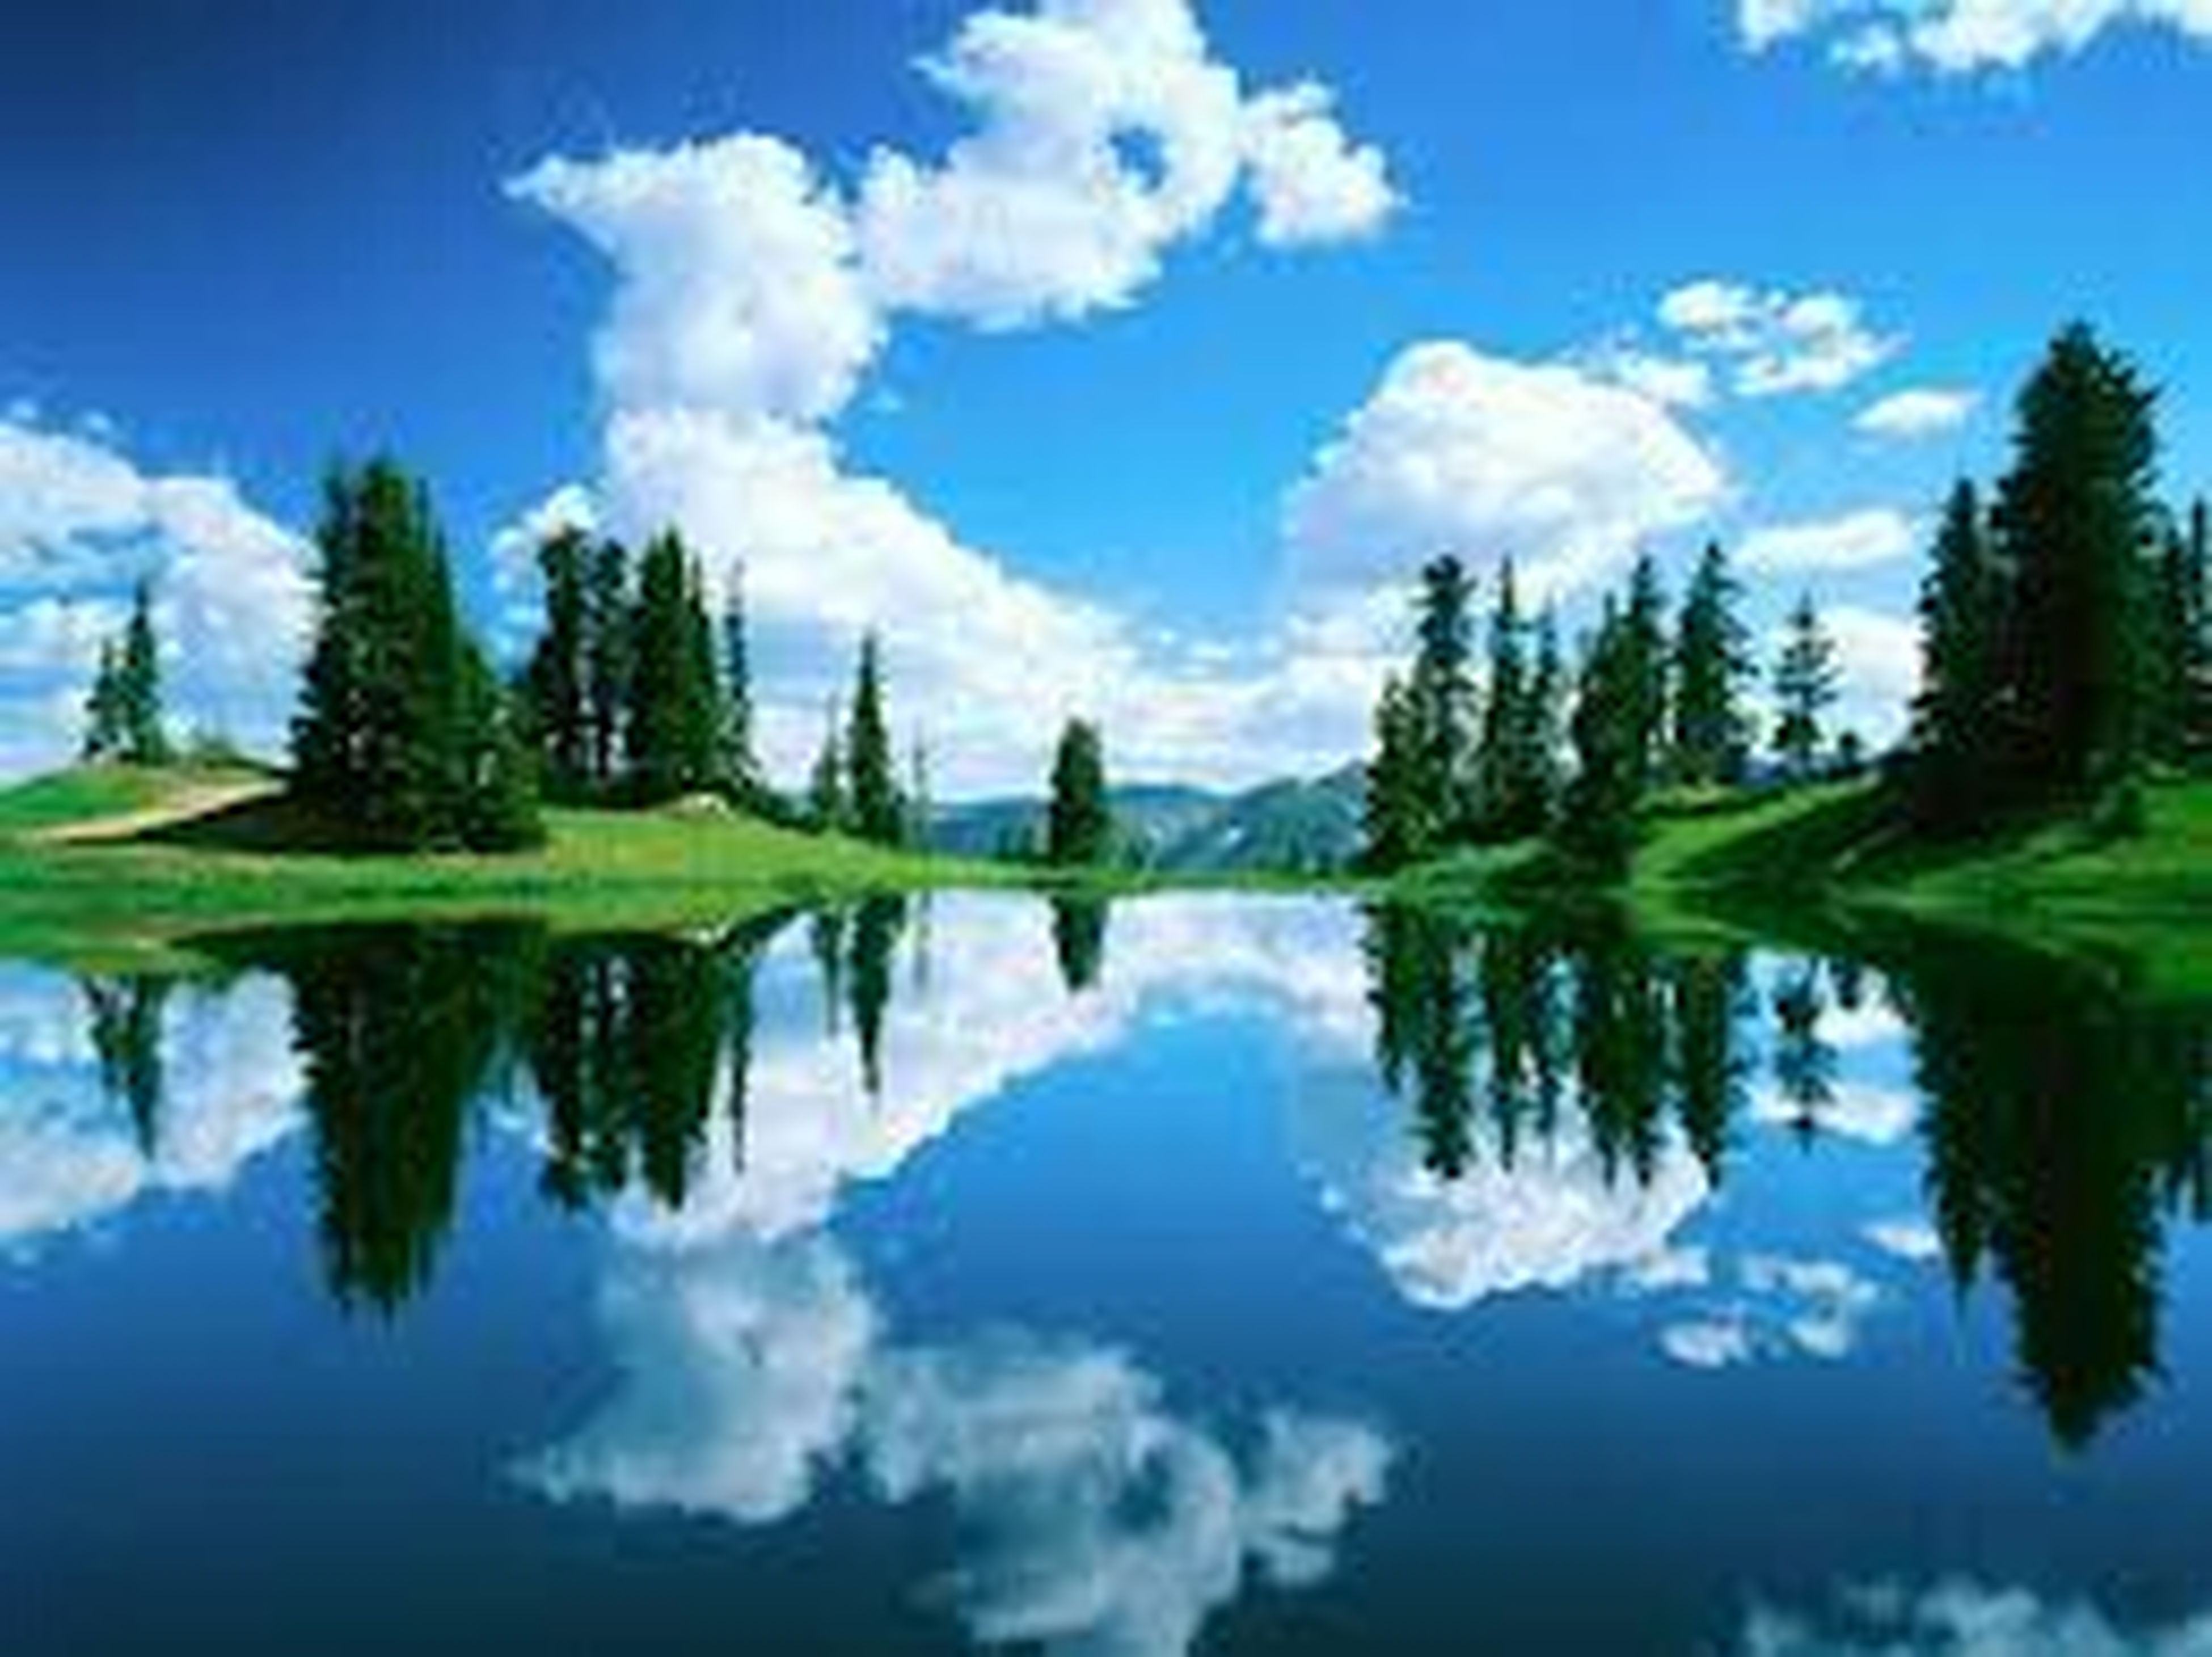 reflection, sky, lake, water, tranquility, tranquil scene, tree, scenics, beauty in nature, cloud - sky, standing water, blue, waterfront, cloud, nature, symmetry, idyllic, calm, growth, day